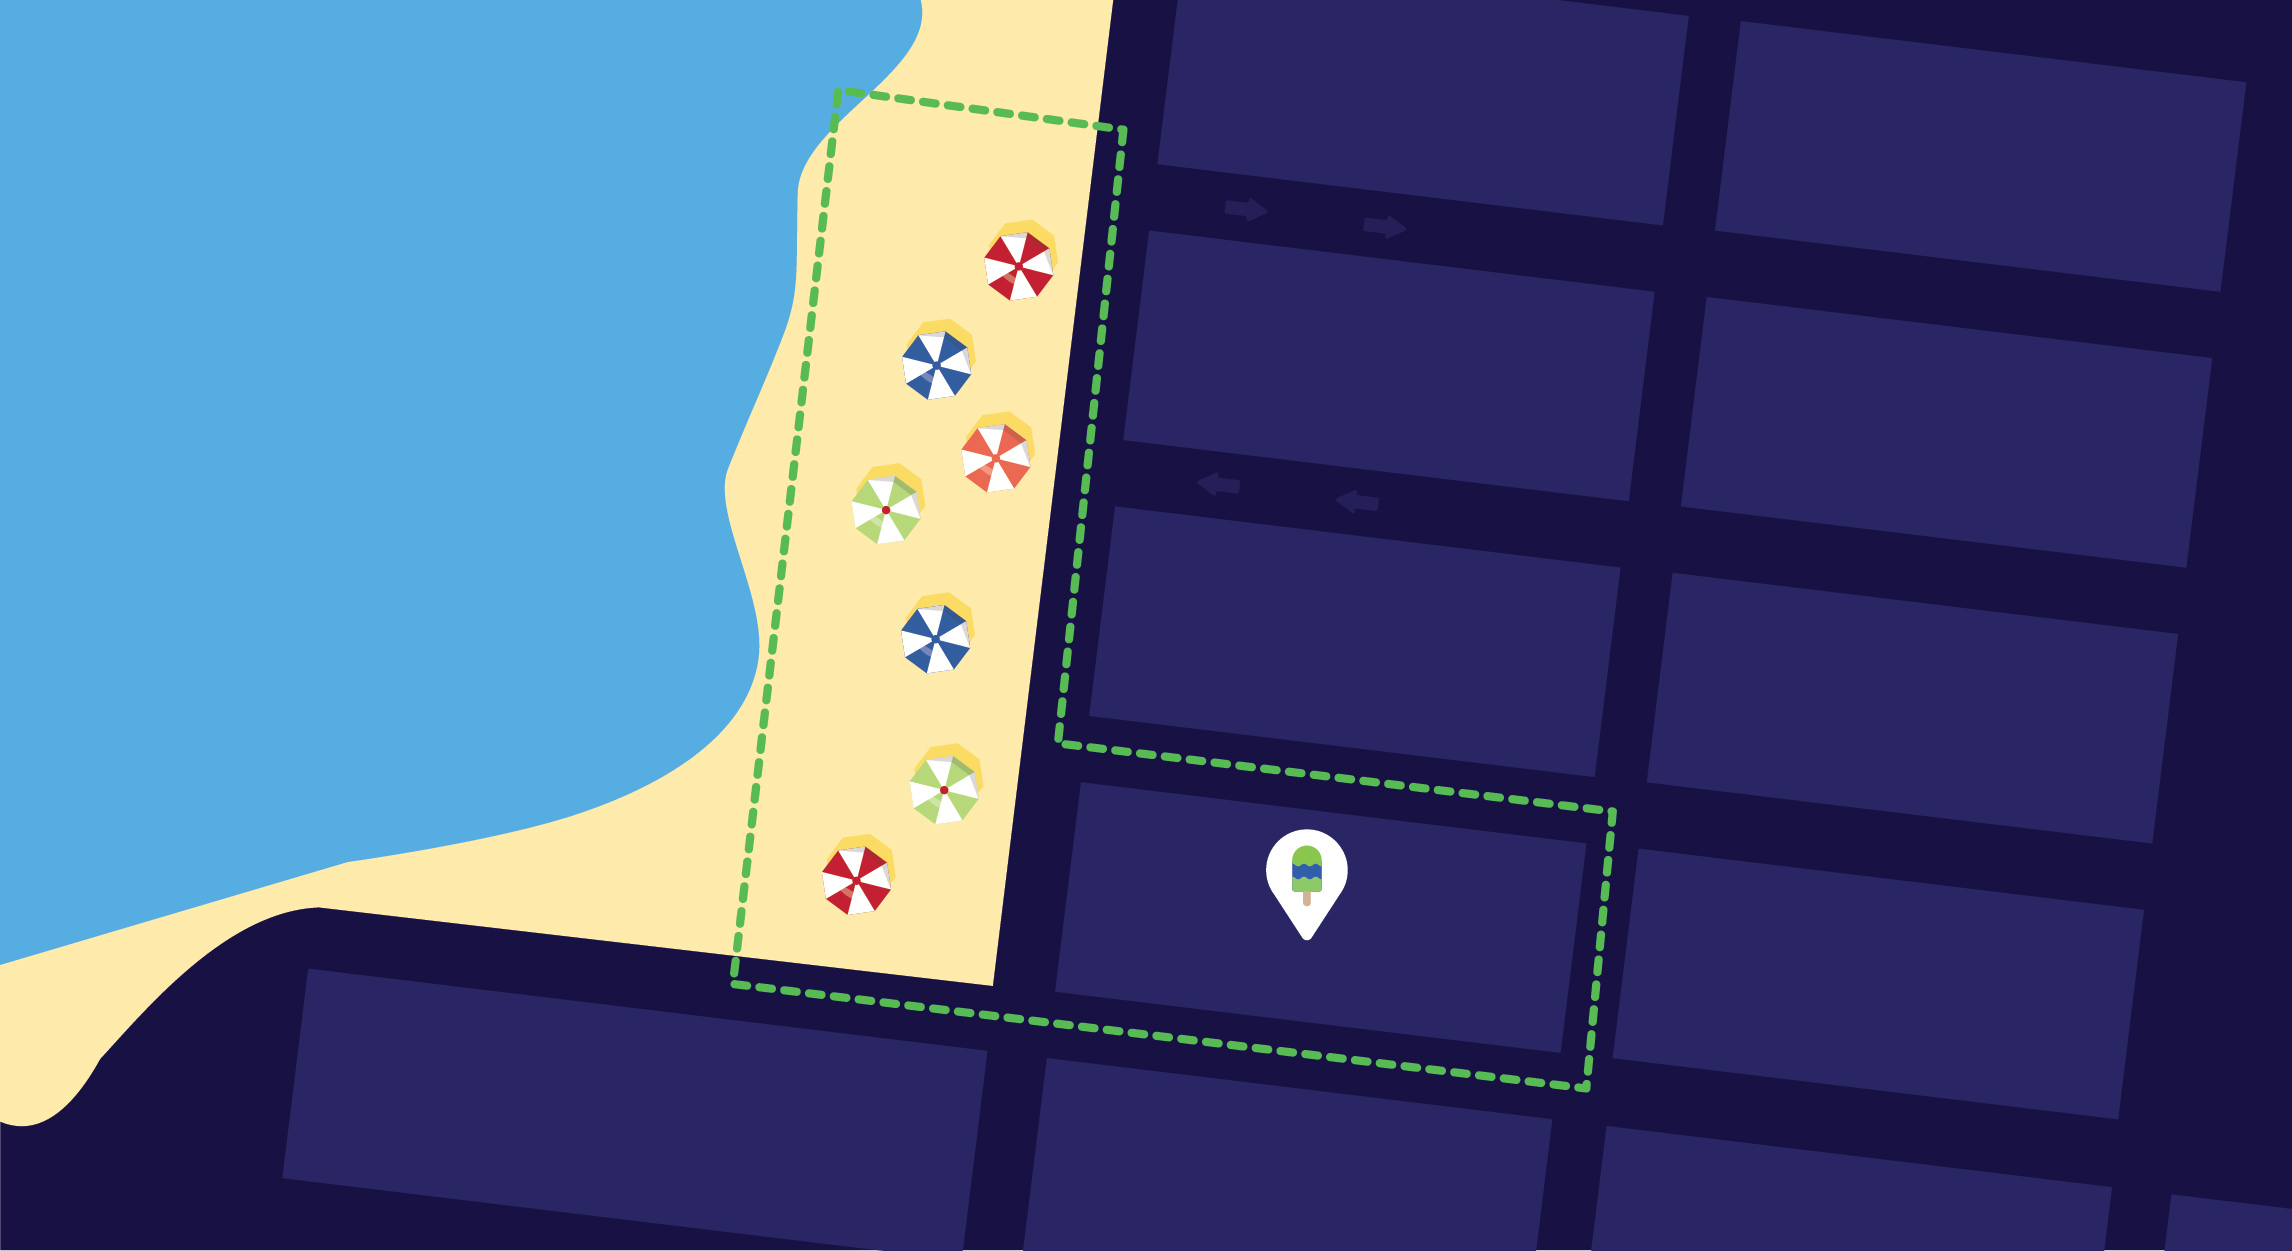 An illustration of an ice cream shop that is geofencing in that location only and the beach surrounding